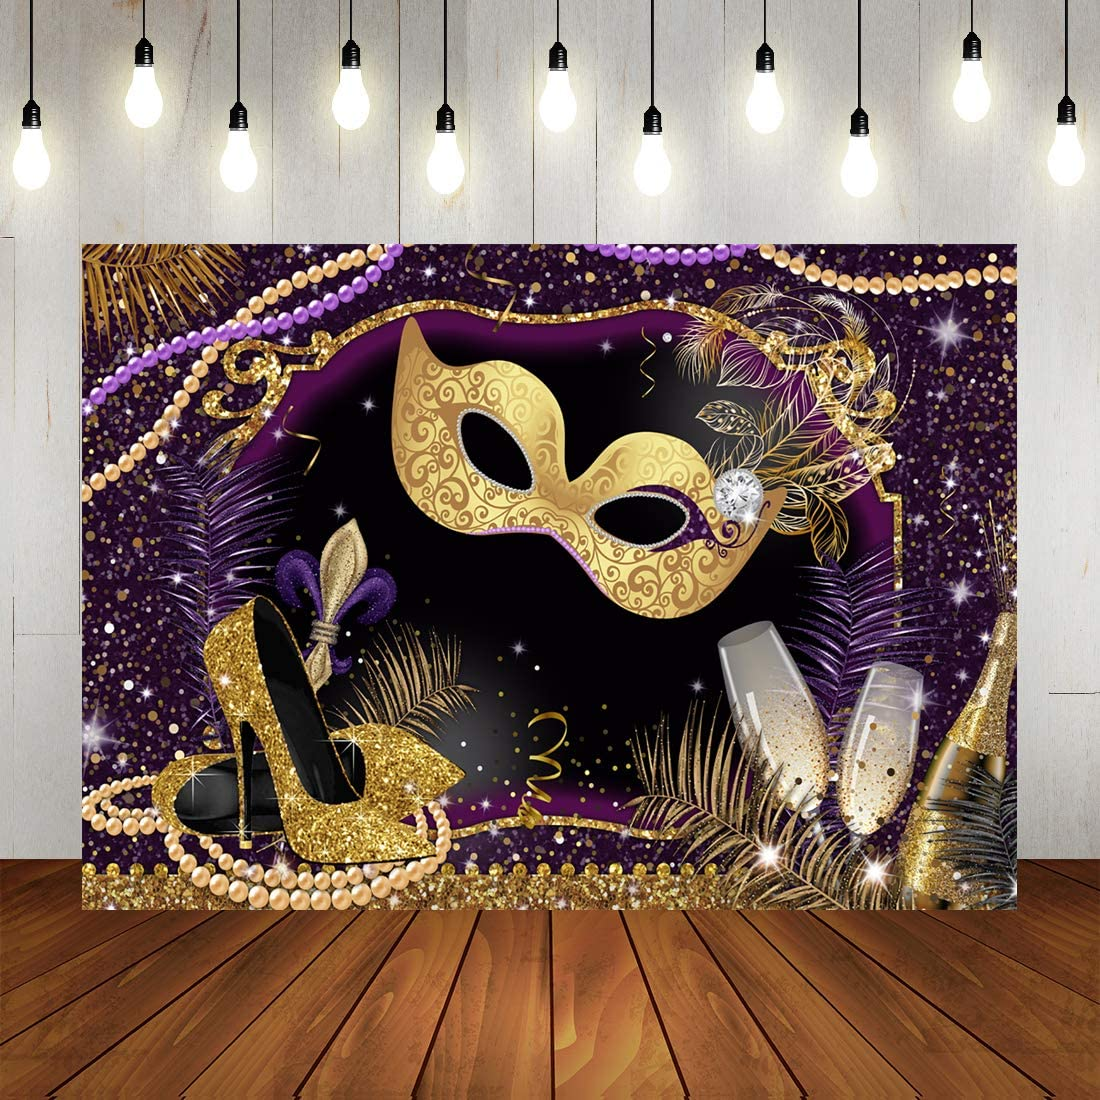 9x6ft Vinyl Photography Backdrop Masquerade Carnival Mask Blurred Bokeh Golden Glitter Spots Birthday Background Event Party Decoration Portrait Photo Shoot Studio Photo Booth Props